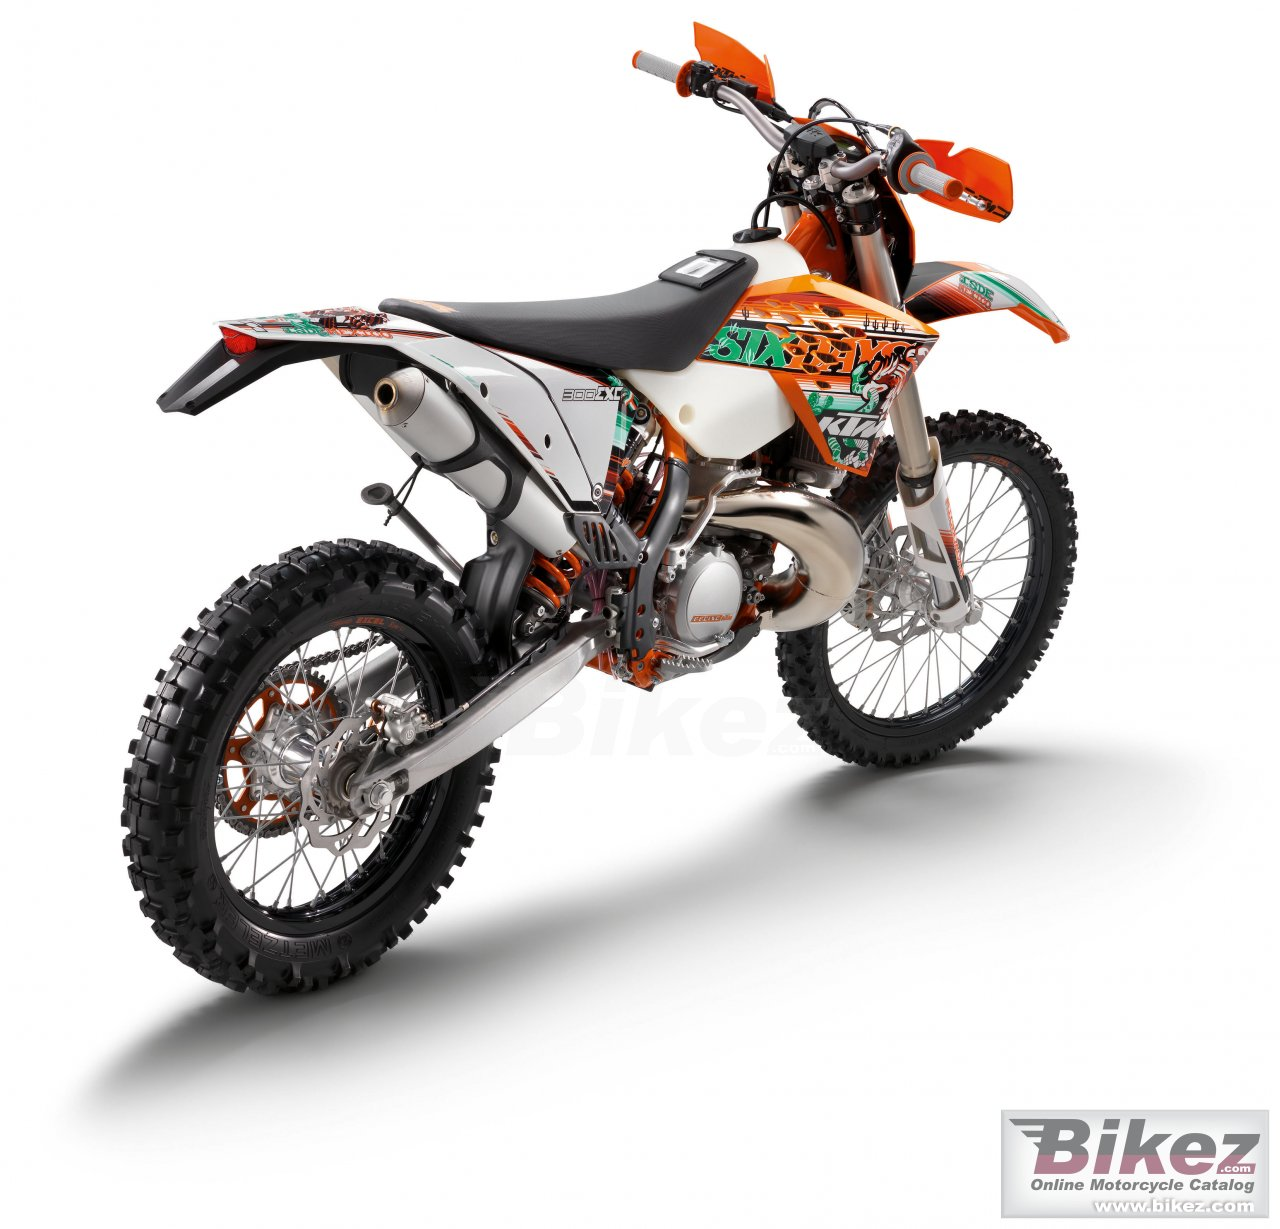 Big KTM 300 exc sixdays picture and wallpaper from Bikez.com